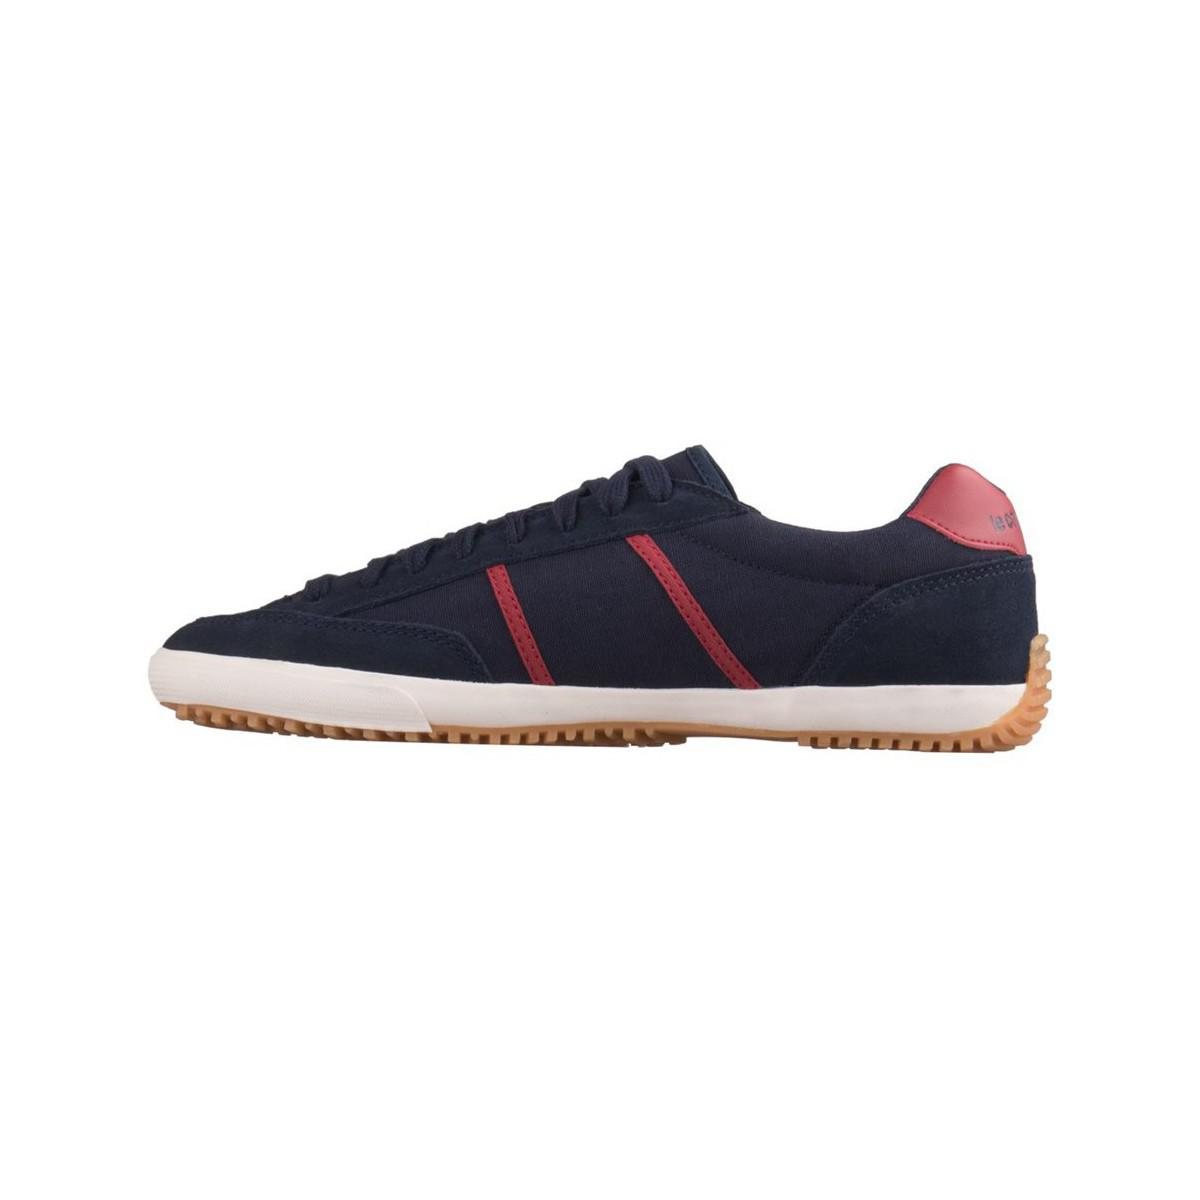 Le Coq Sportif Sapatilha Avron Navy Blue Men's Shoes (trainers) In Red for Men